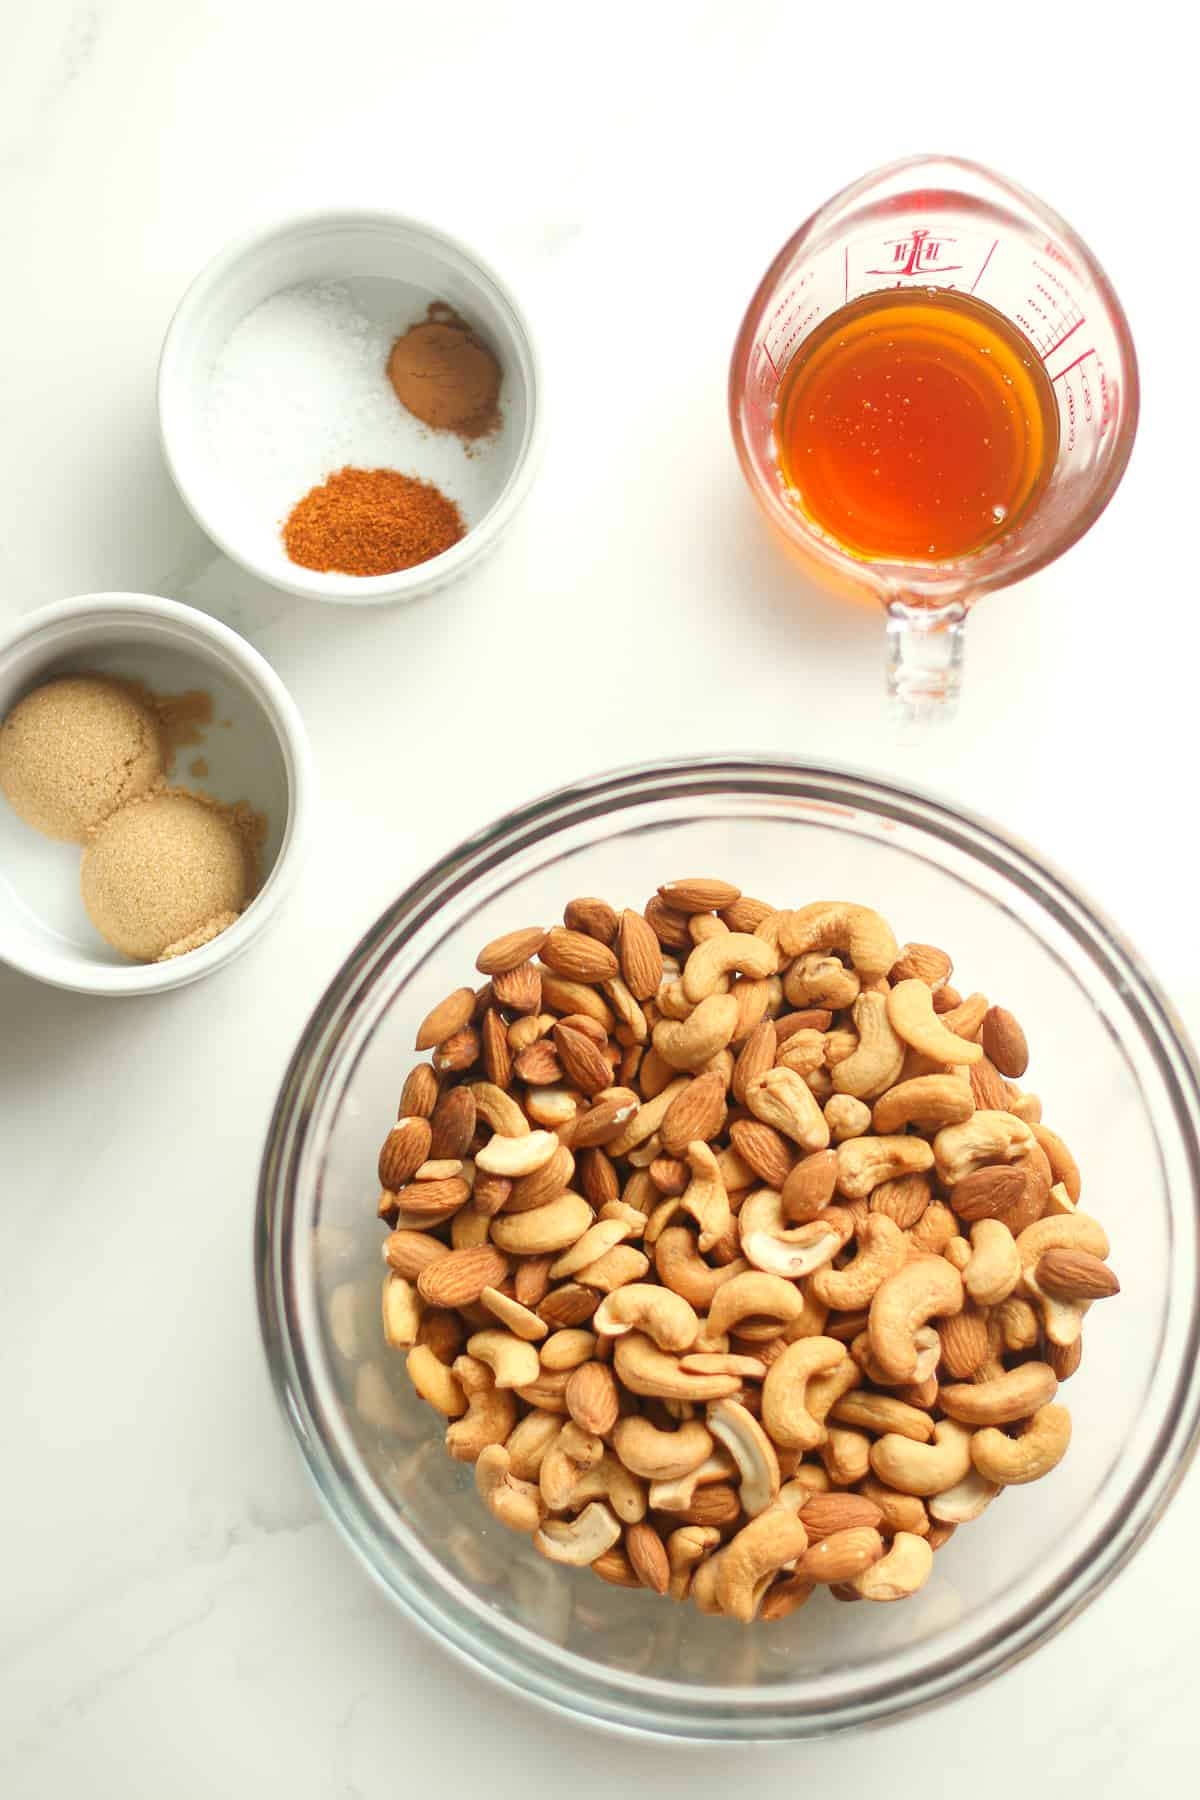 The ingredients for the nuts, including honey, sugar, and spices.